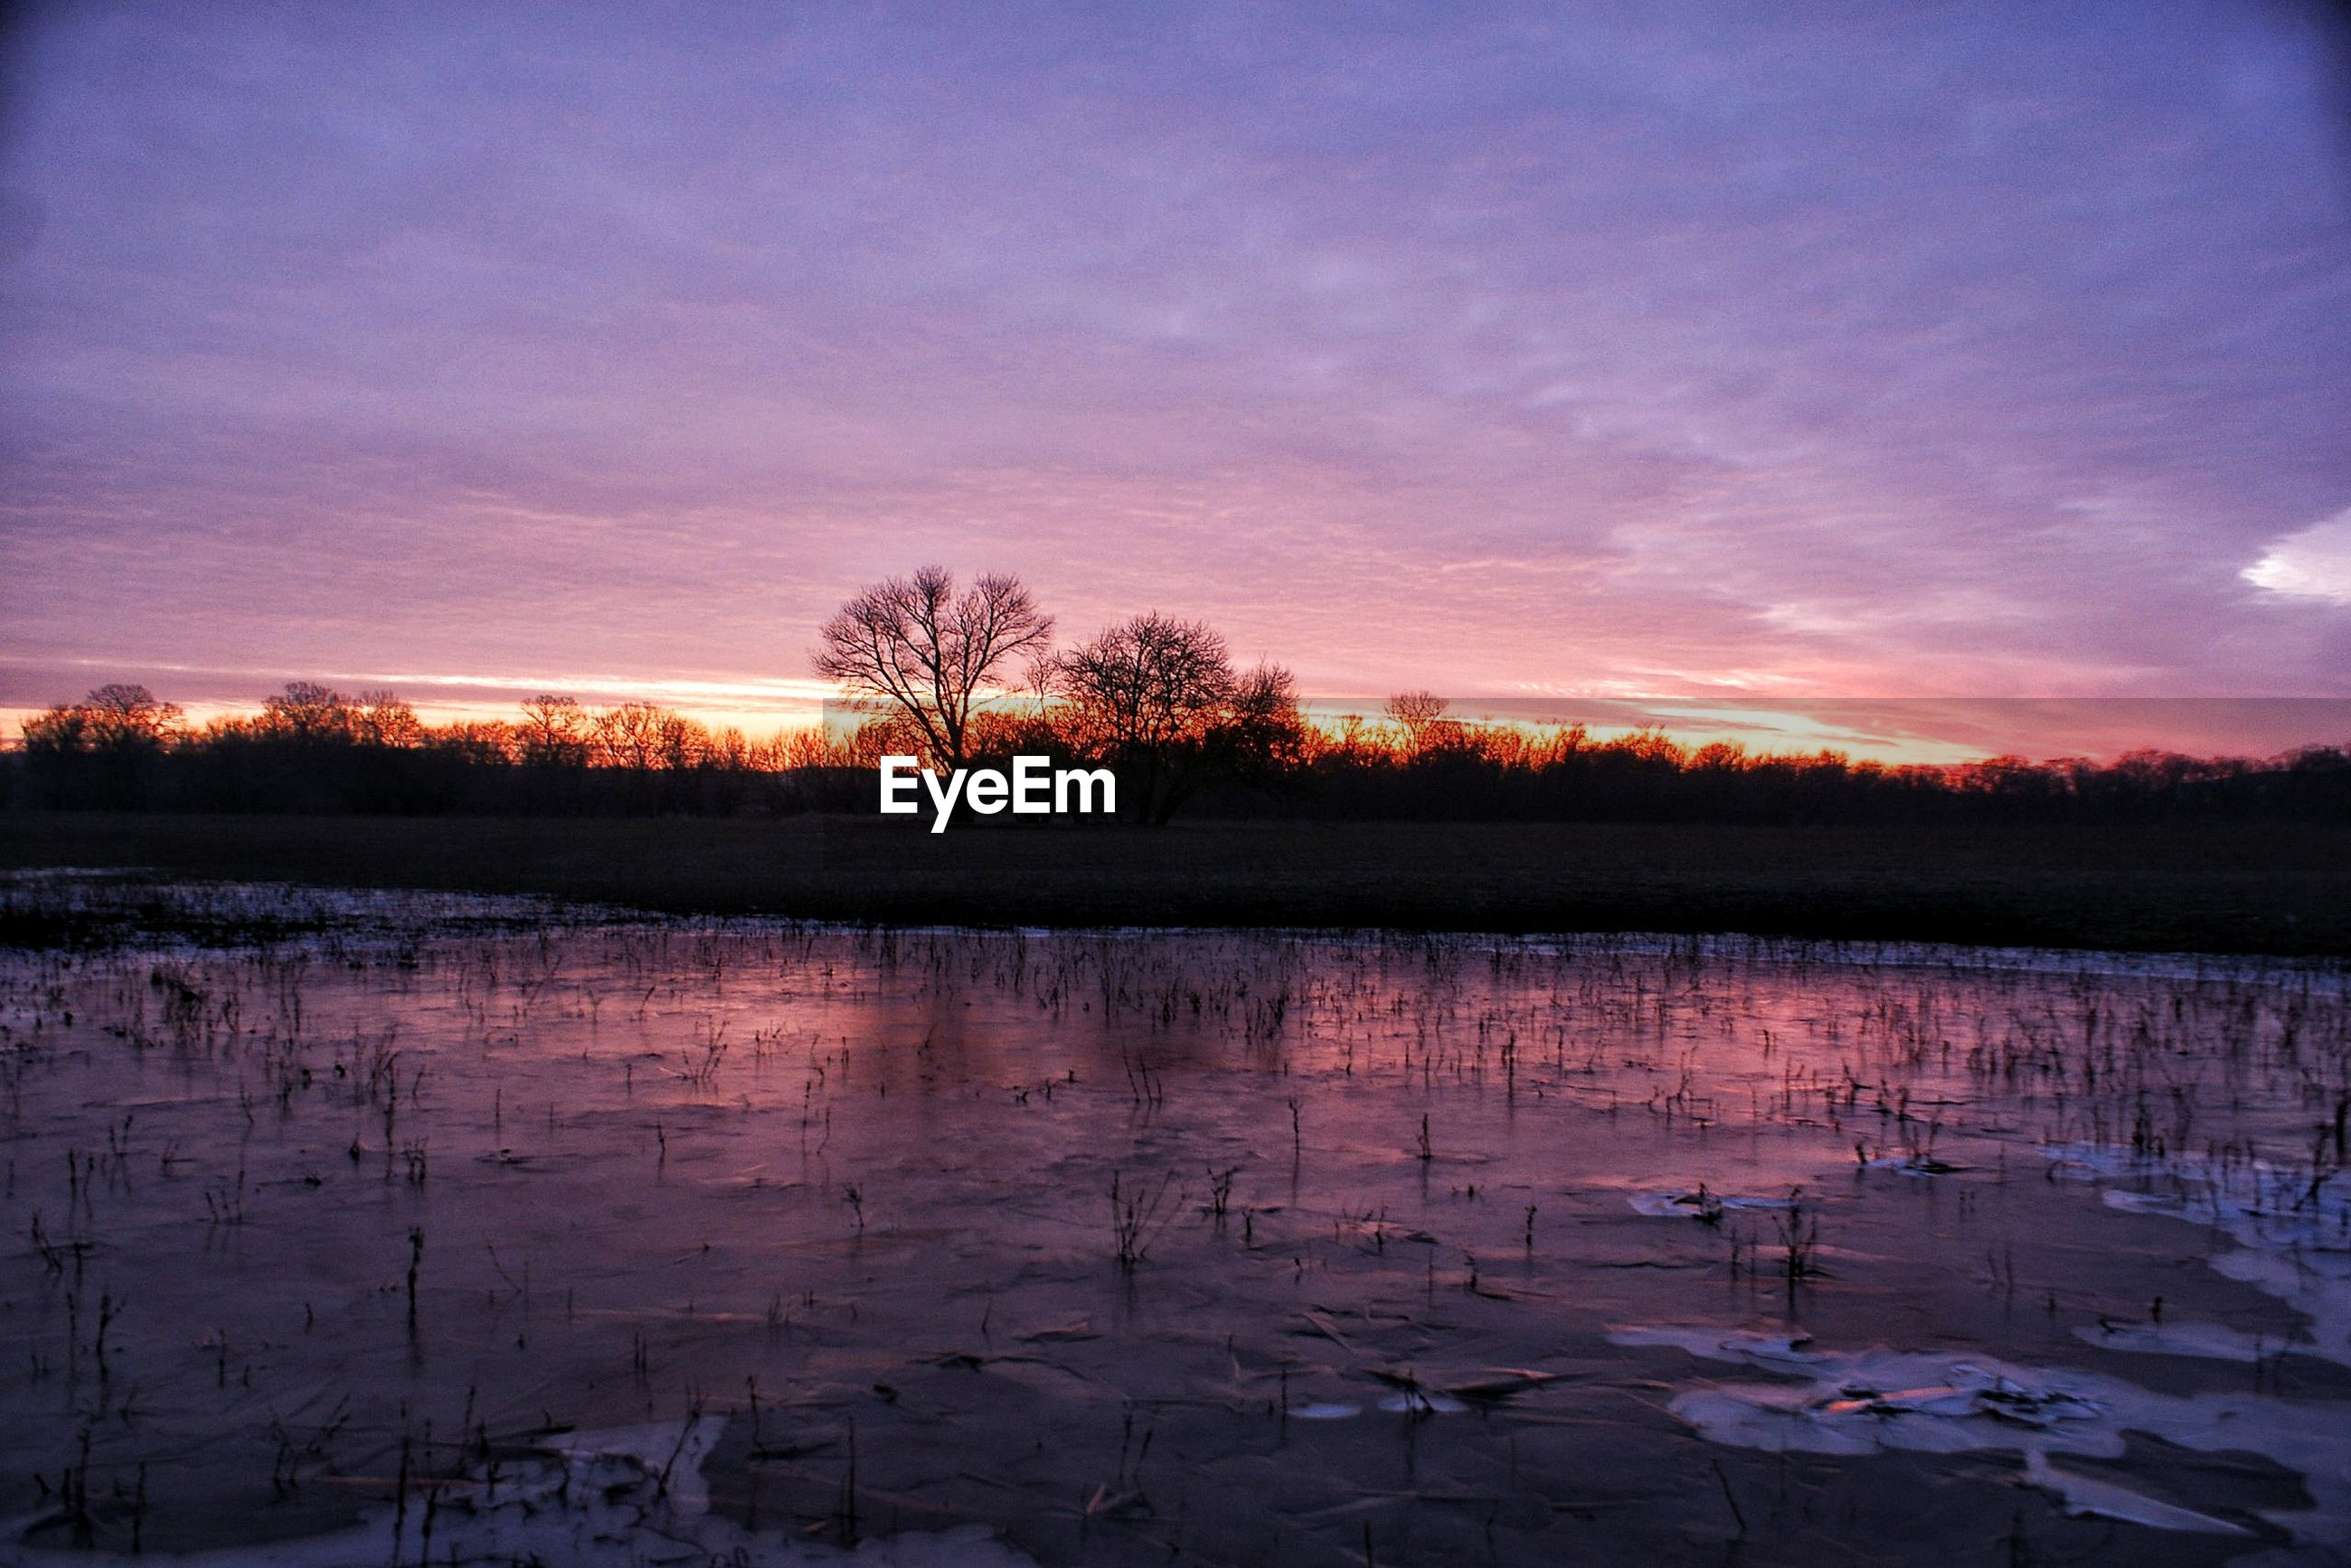 sunset, nature, beauty in nature, tranquil scene, scenics, reflection, tranquility, lake, tree, sky, silhouette, winter, water, outdoors, landscape, cold temperature, no people, snow, travel destinations, cloud - sky, bare tree, day